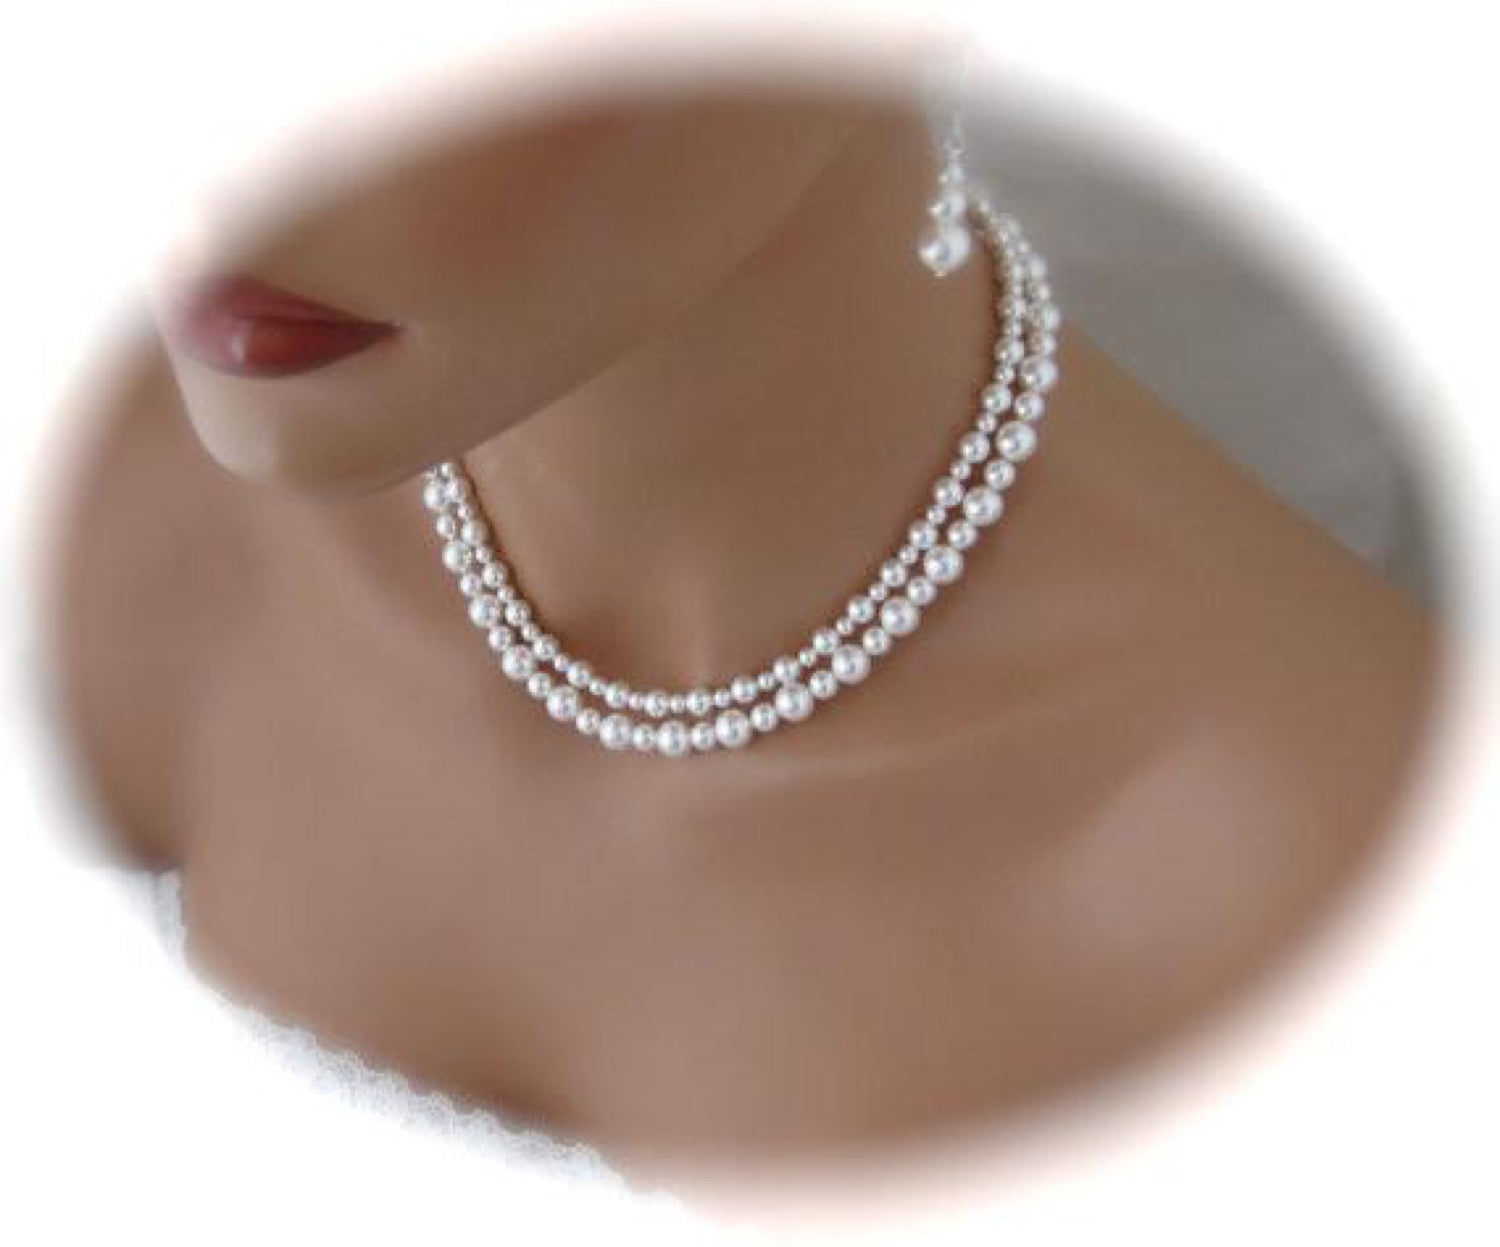 White Double Strand Pearl Necklace Bridal Earrings Wedding Jewelry - Clairesbridal - 1